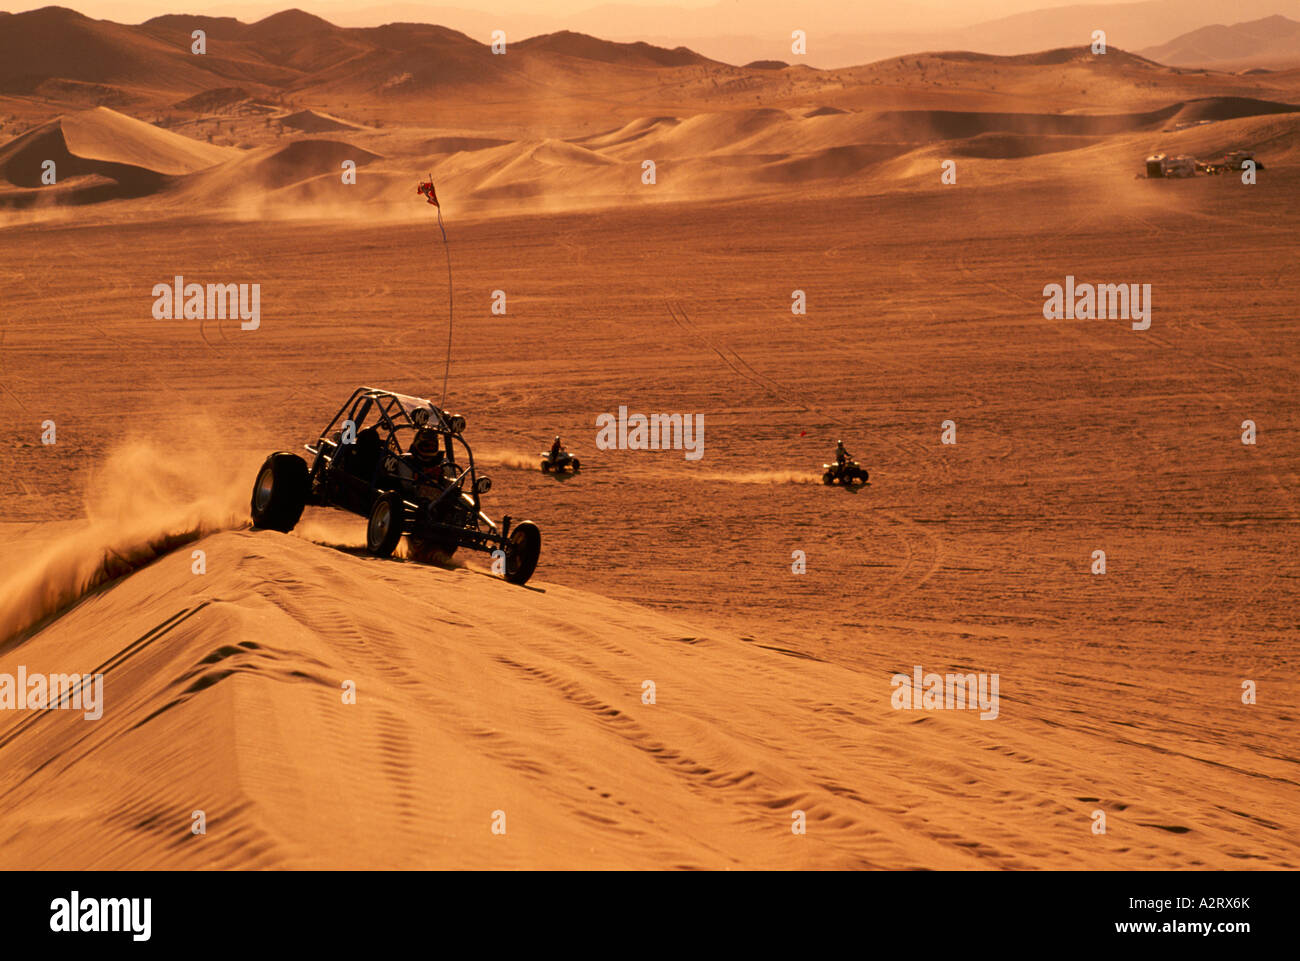 Dune Buggy and All-Terrain Vehicles at the Dumont Sand Dunes near Death Valley National Park California USA - Stock Image